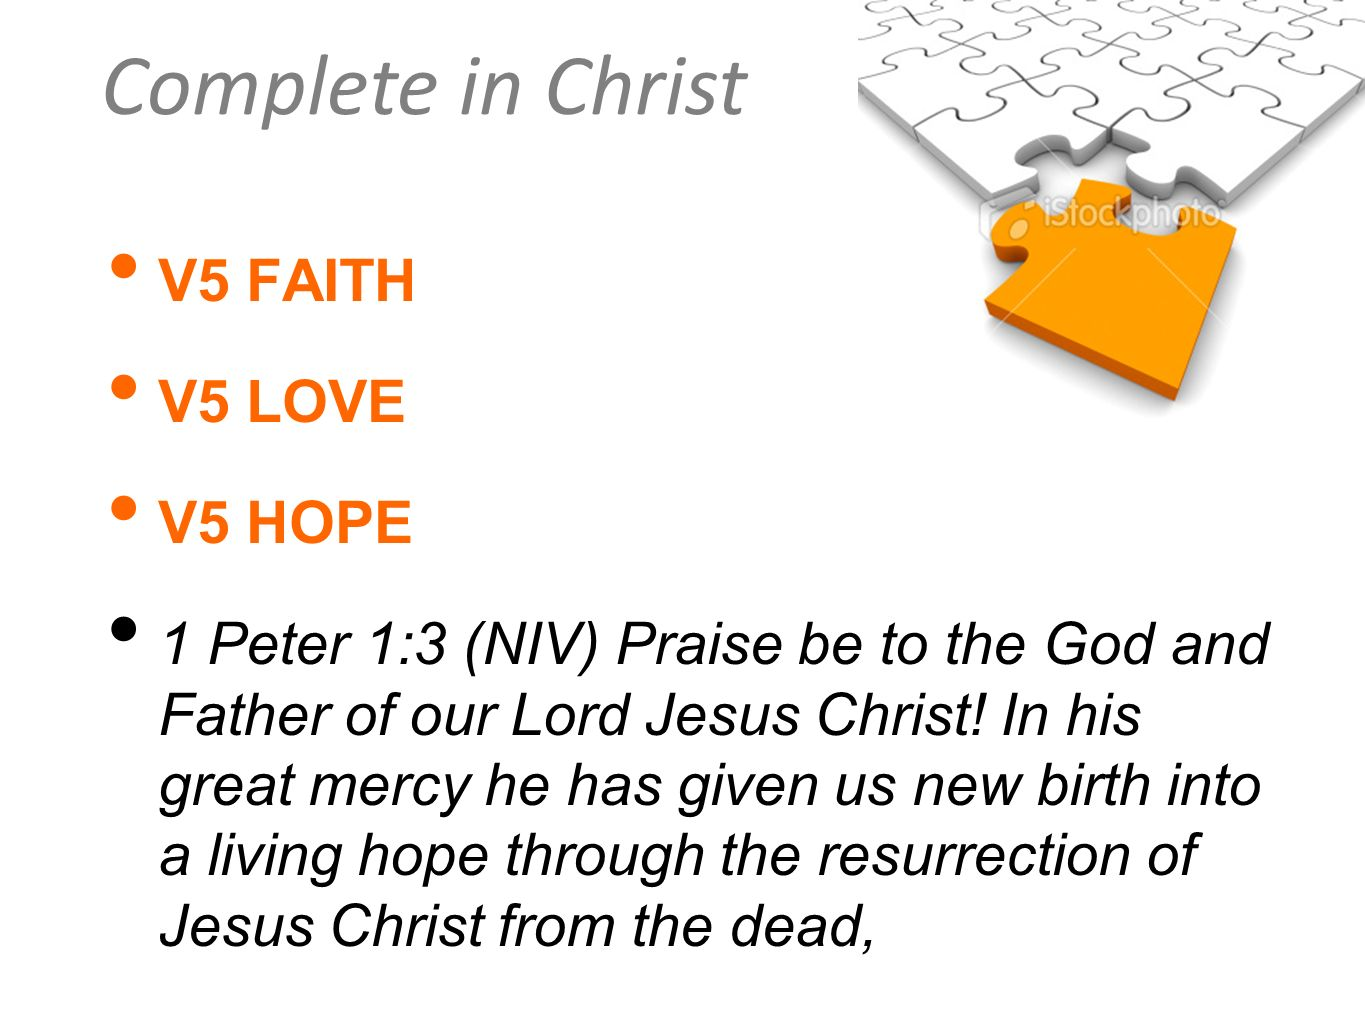 Complete in Christ V5 FAITH V5 LOVE V5 HOPE 1 Peter 1:3 (NIV) Praise be to the God and Father of our Lord Jesus Christ! In his great mercy he has give